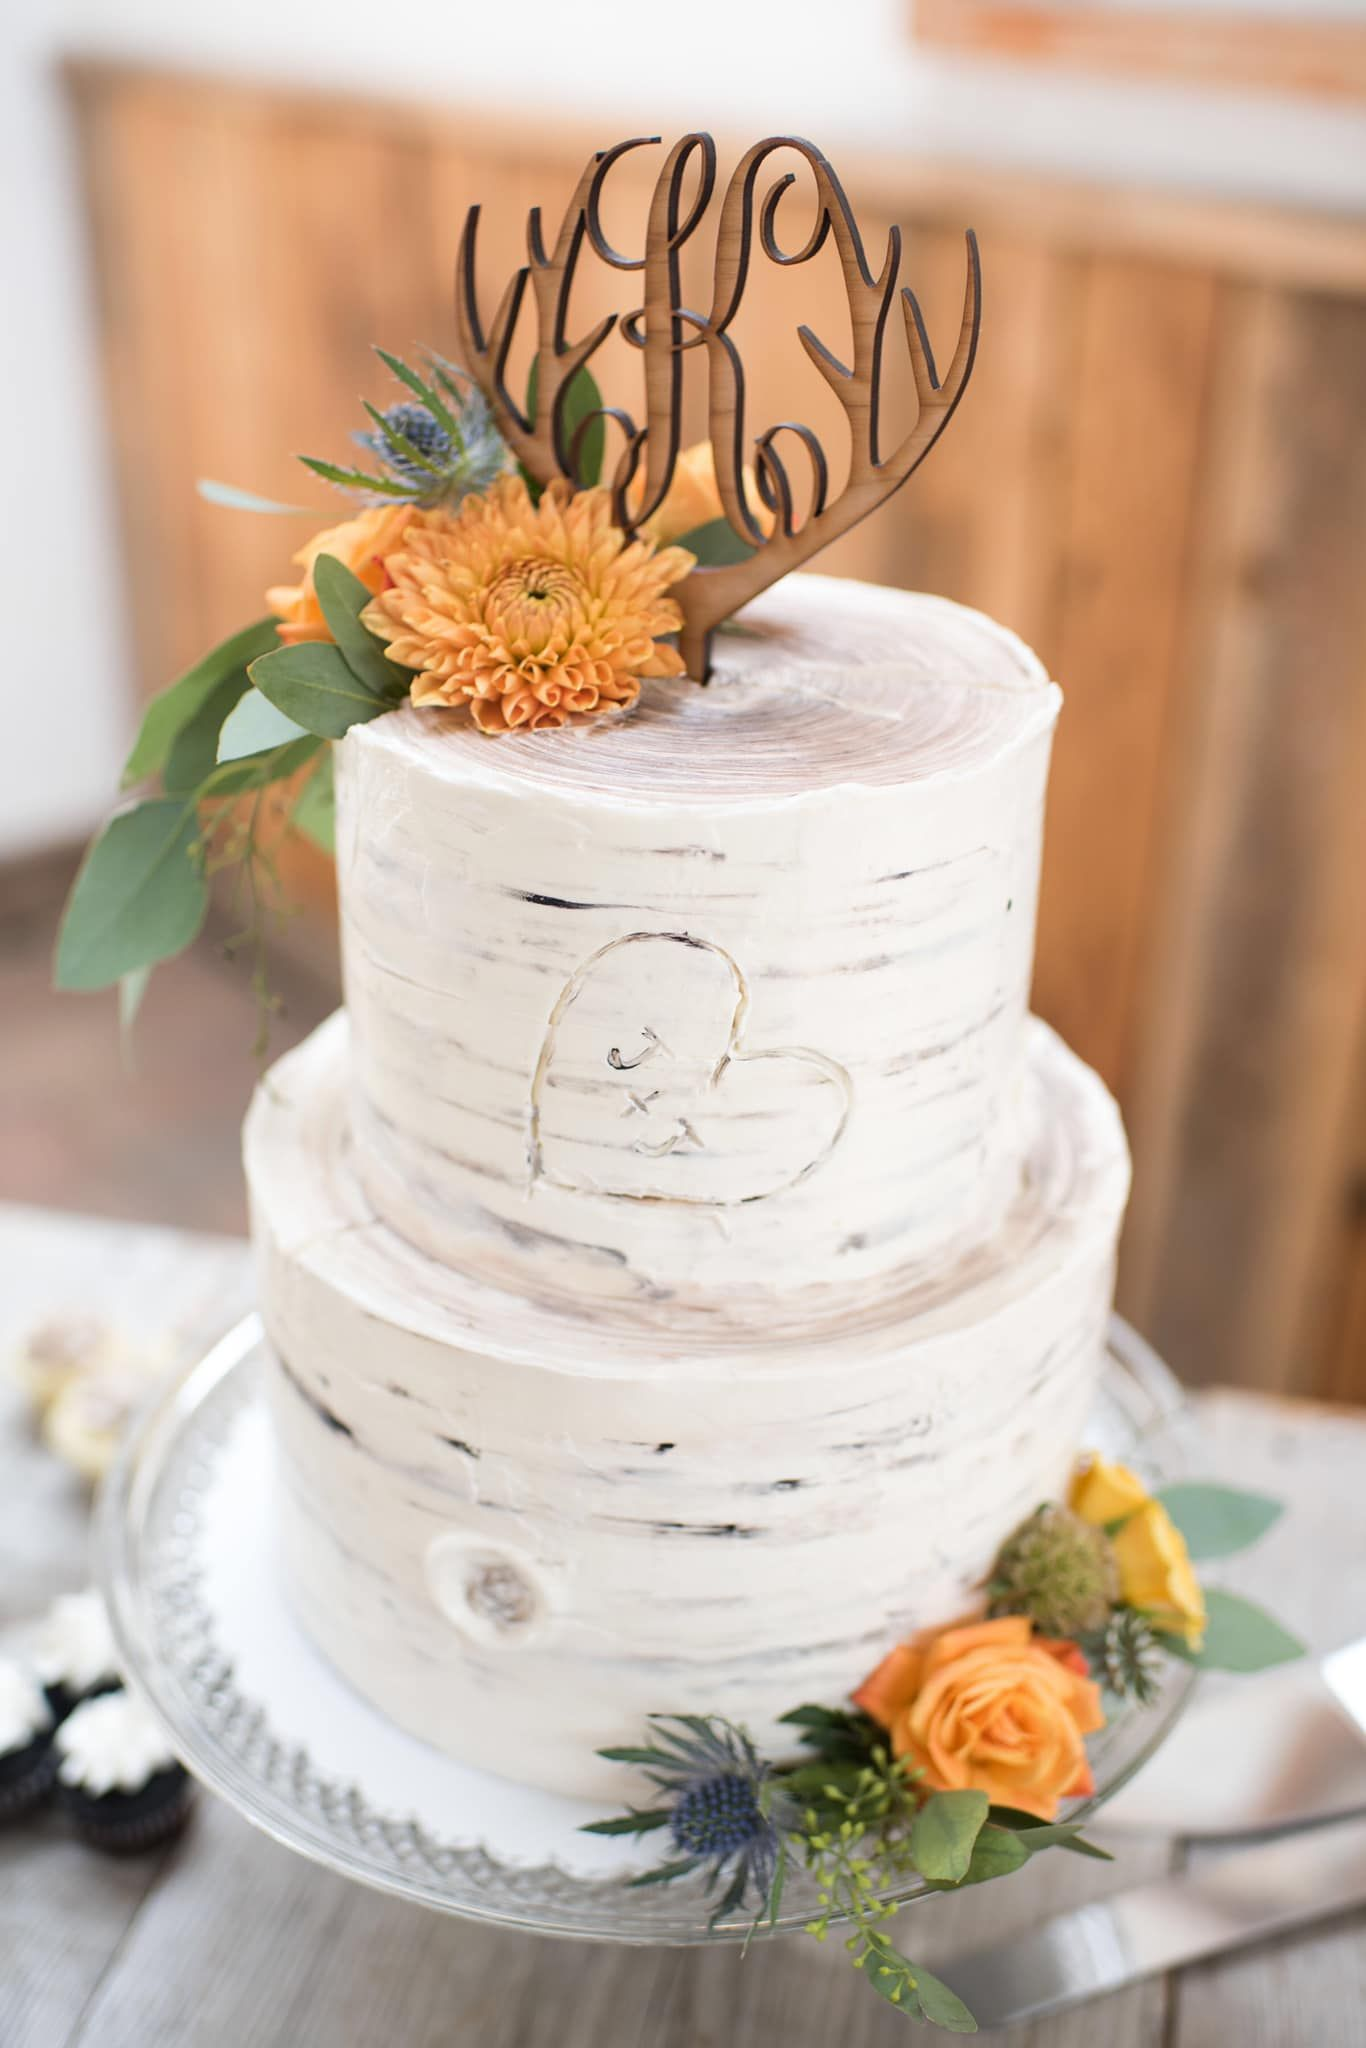 Two Tier Birch Bark Wedding Cake With Custom Wood Topper And Fresh Yellow Orange And Blue Thistle Flowers Creative Wedding Cakes Wedding Cakes Tiered Cakes